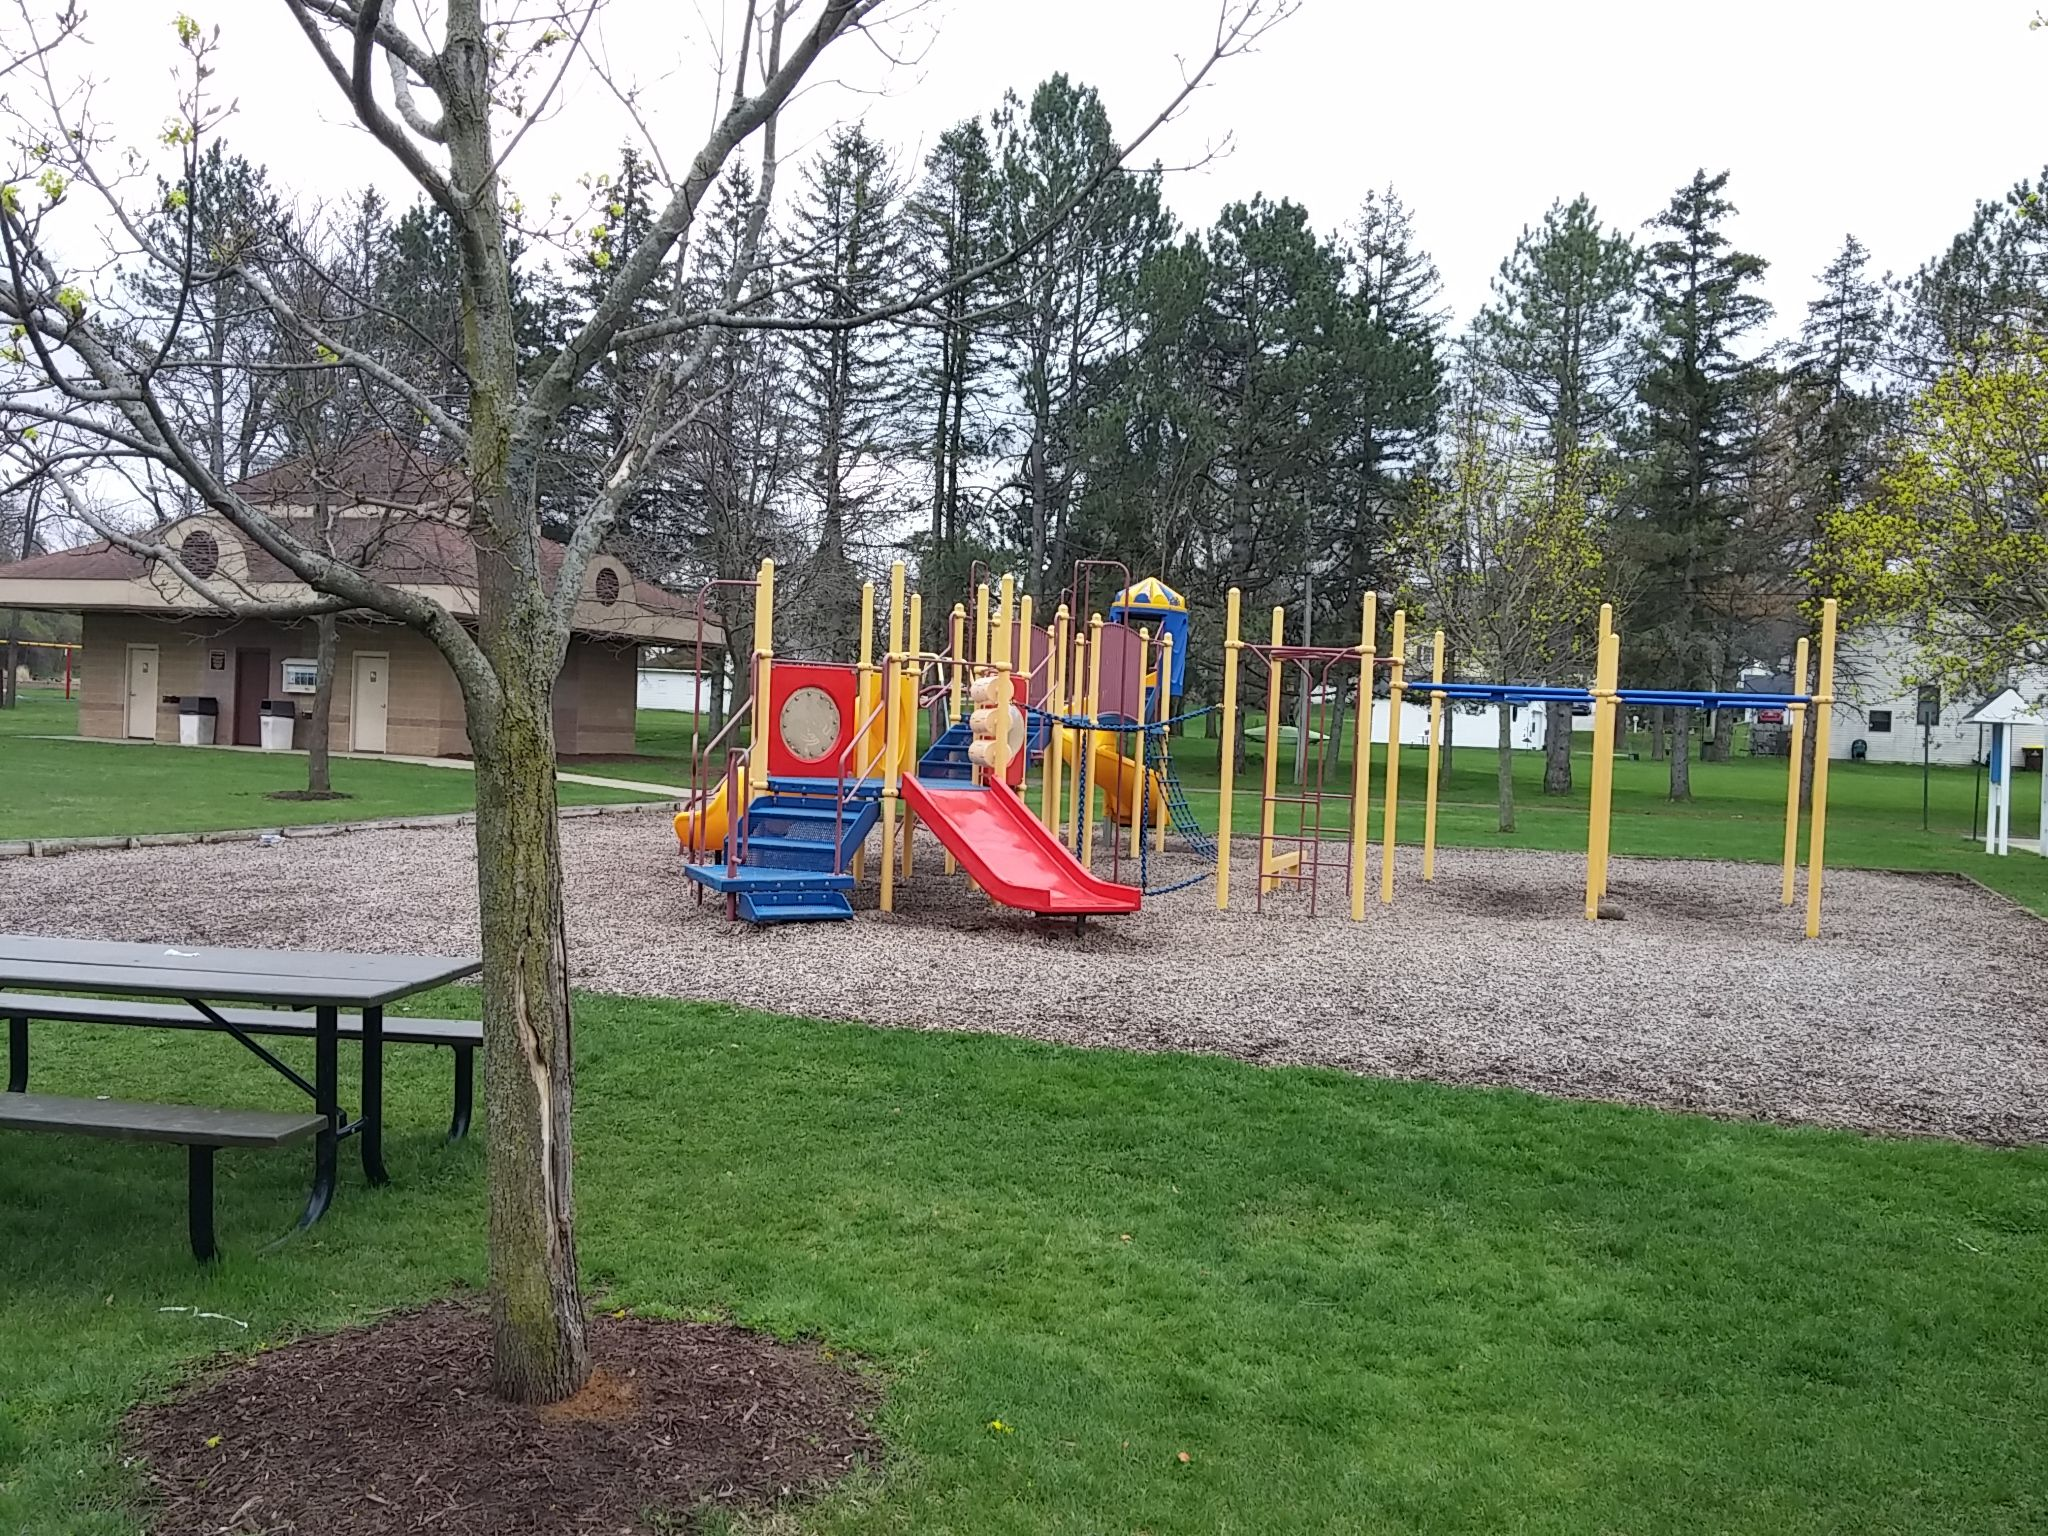 Dewitt Michigan Of Greater Lansing MI Riverside Park Includes Childrens Playground Pavilion Kayak Launch And Picnic Area Courtesy RE MAX Real Estate